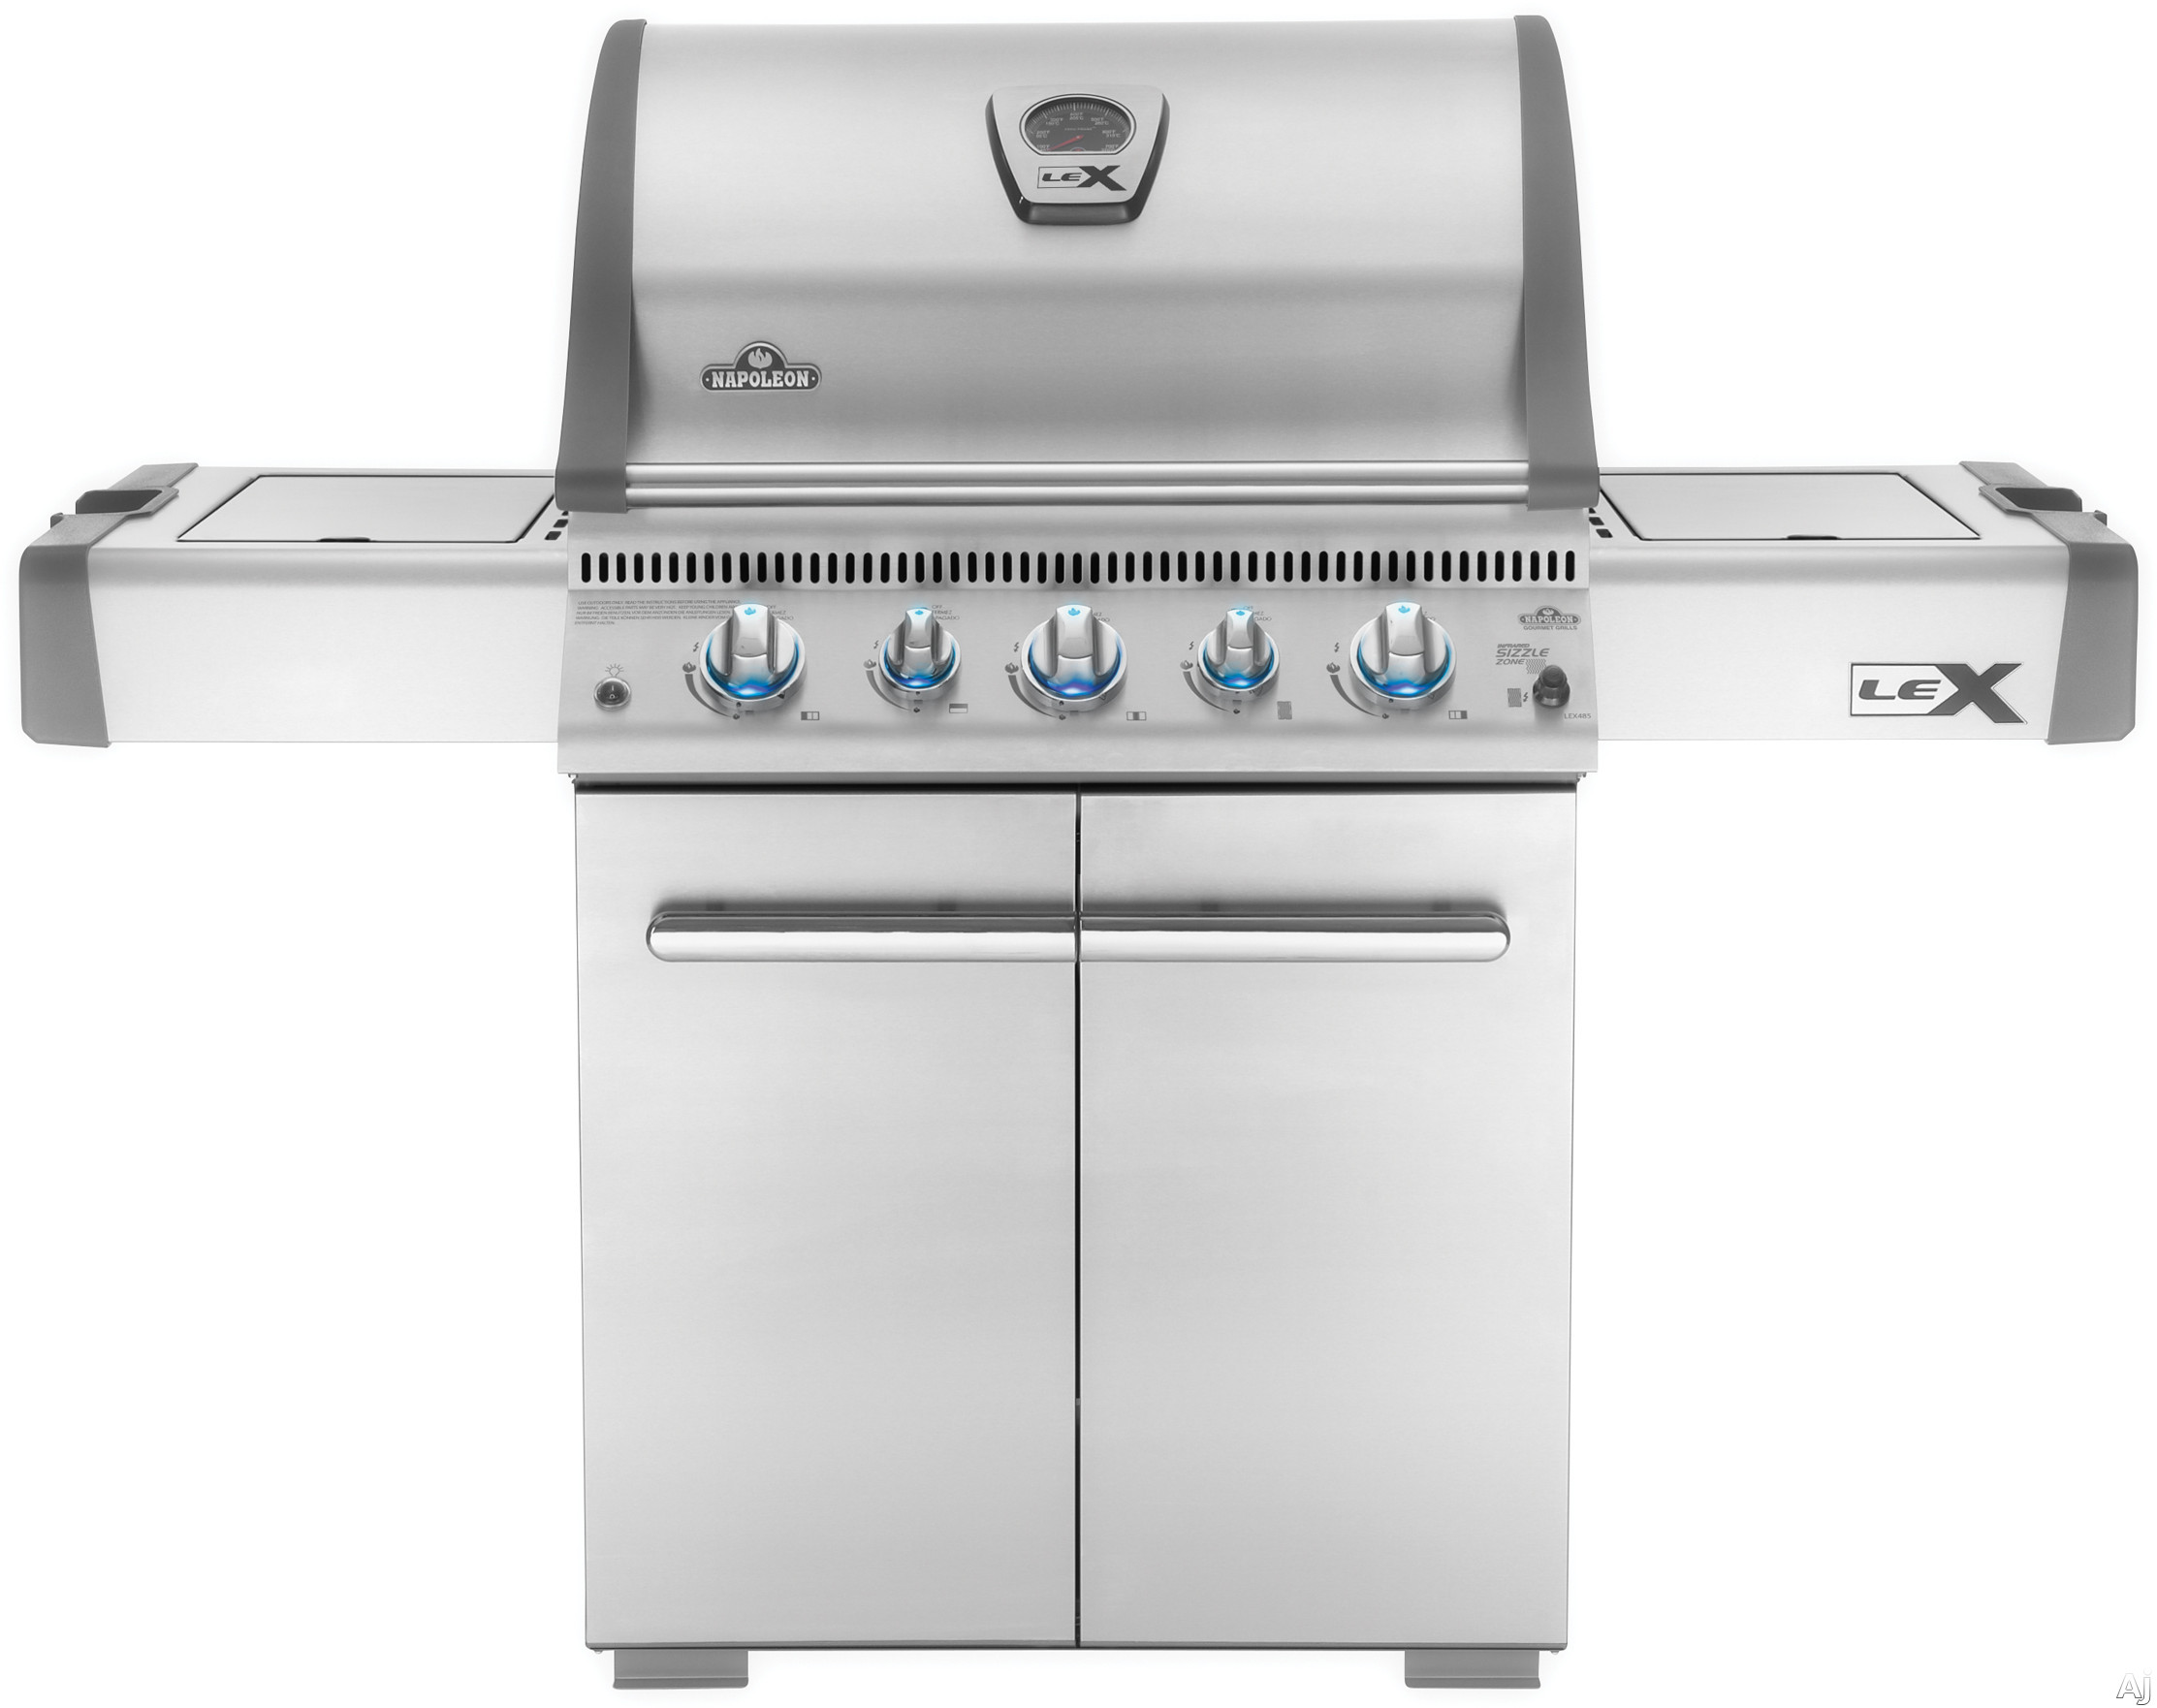 Napoleon LEX Series LEX485RSIBPSS1 62 Inch Freestanding Gas Grill with Infrared Burner, SIZZLE ZONE, i-GLOW, Backlit, 675 sq. in. Cooking Area, 74,000 Total BTU, 4 Burners, Side Burner, Warming Rack a